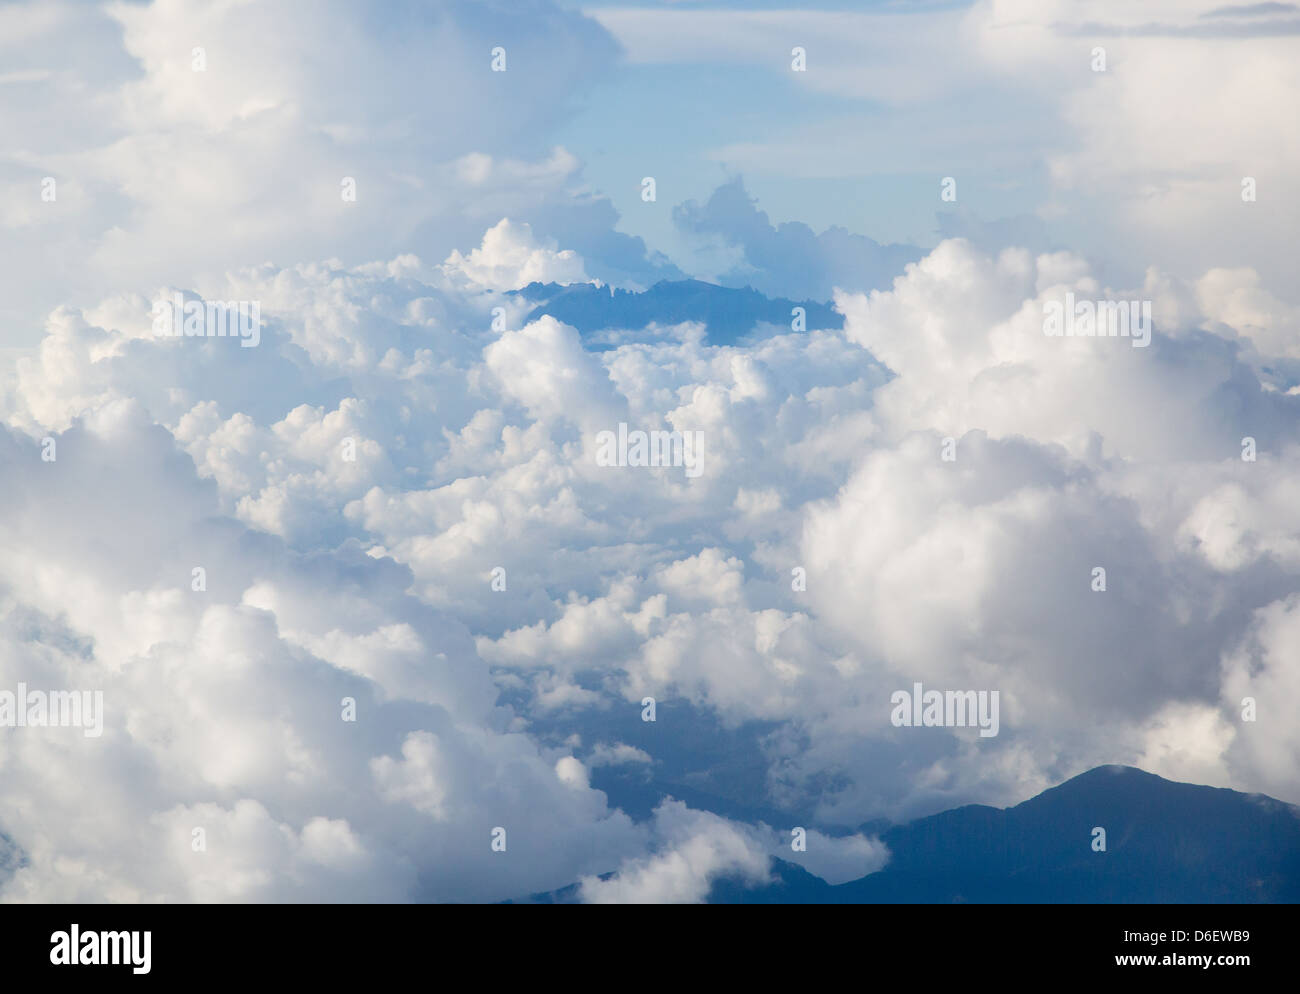 The jagged peaks of the summit of distant Gunung Kinabalu pushing through cloud Sabah Borneo - Stock Image